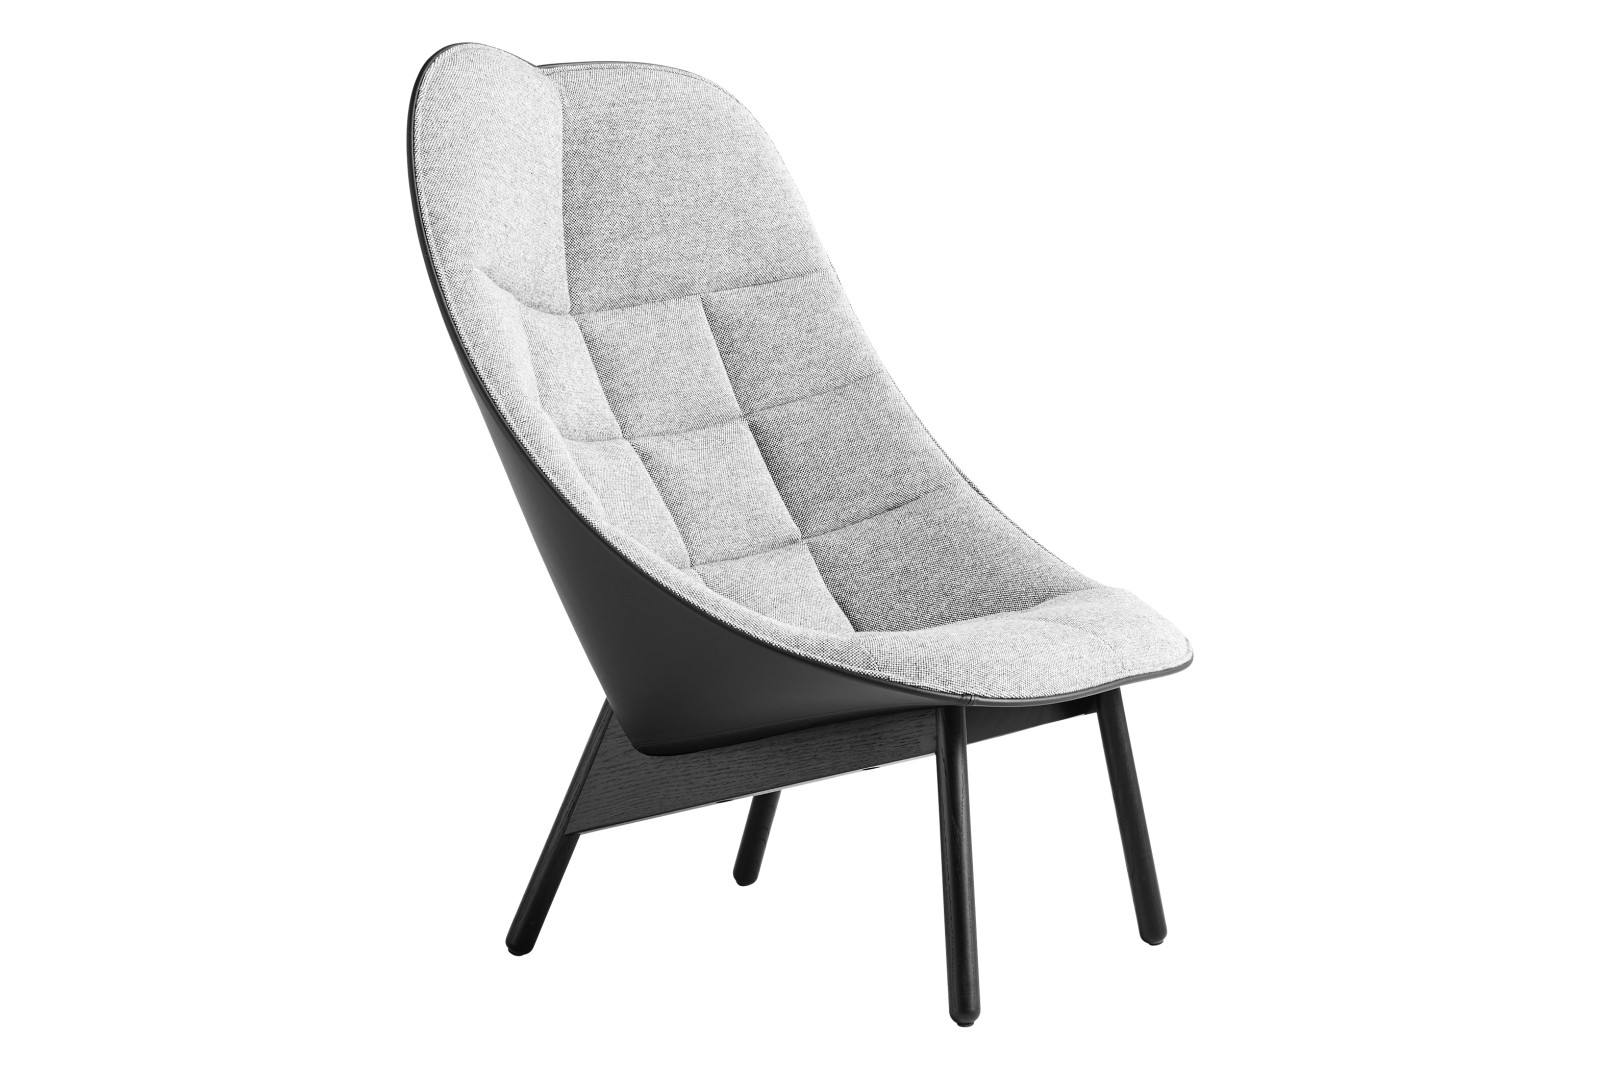 Uchiwa Quilt Lounge Chair Front uph. Fabric Group 4, Back uph. Fabric Group 5, Wood Black Oak